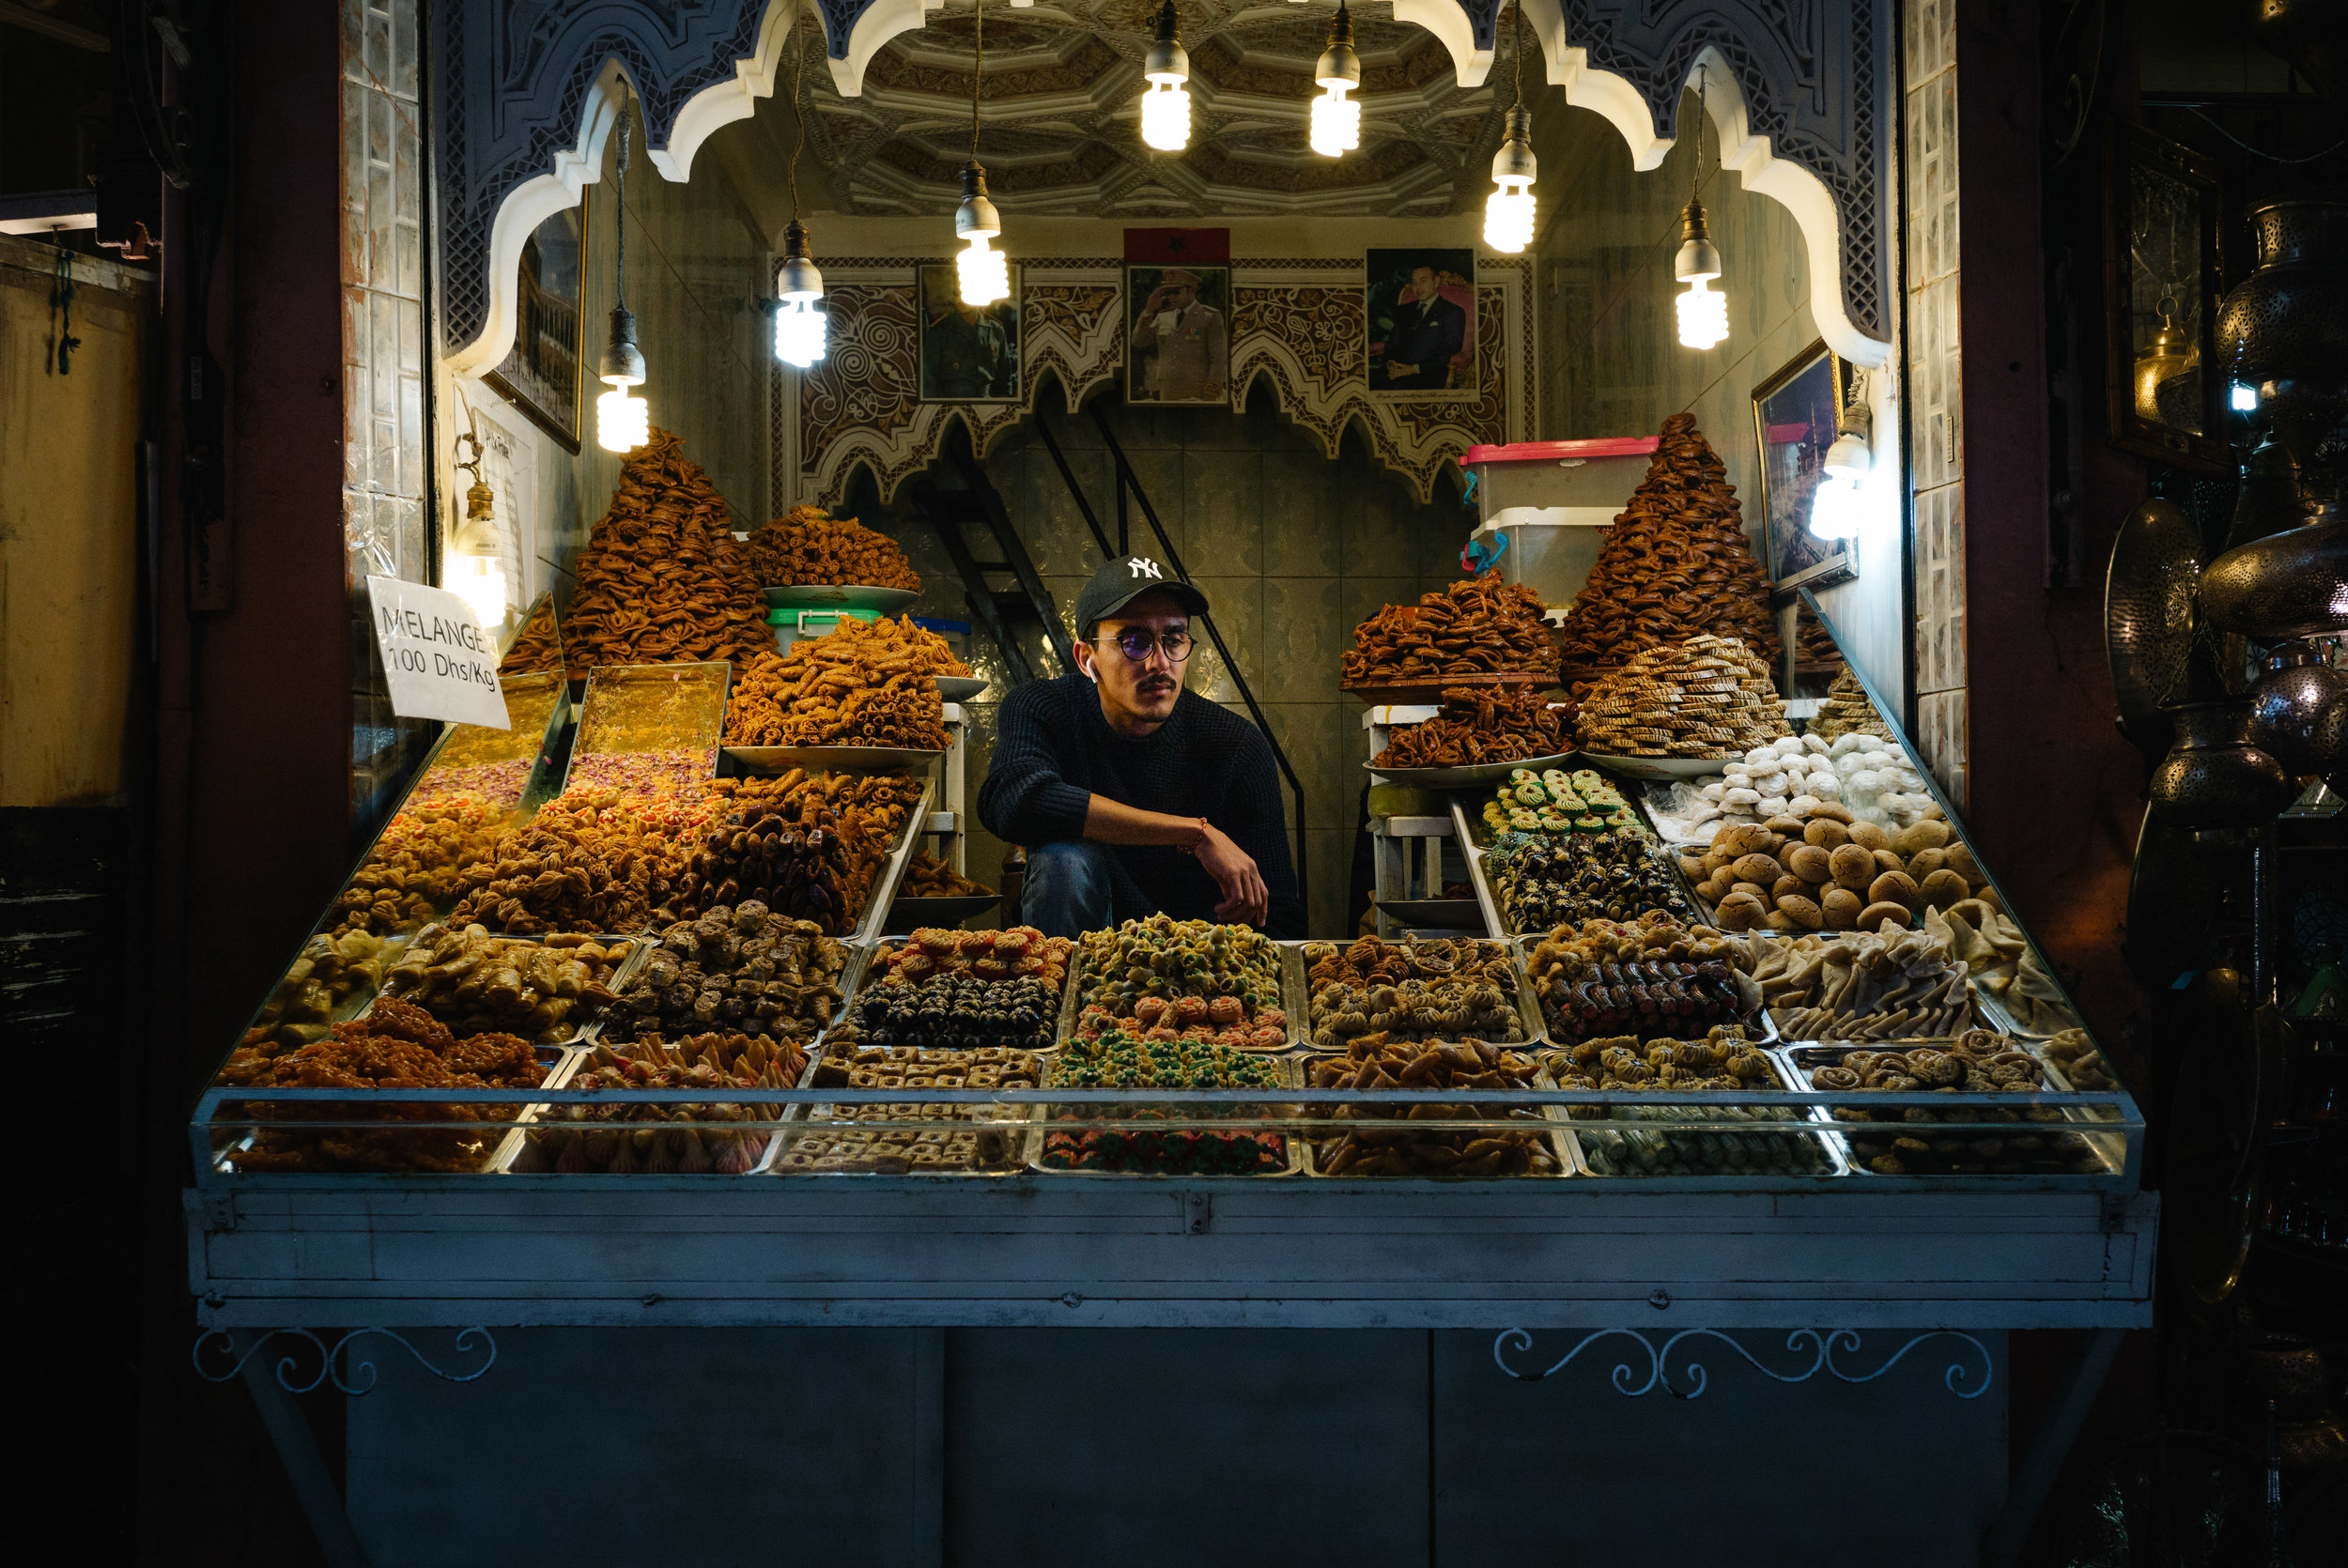 A baklava stall - Clifford Darby 2018